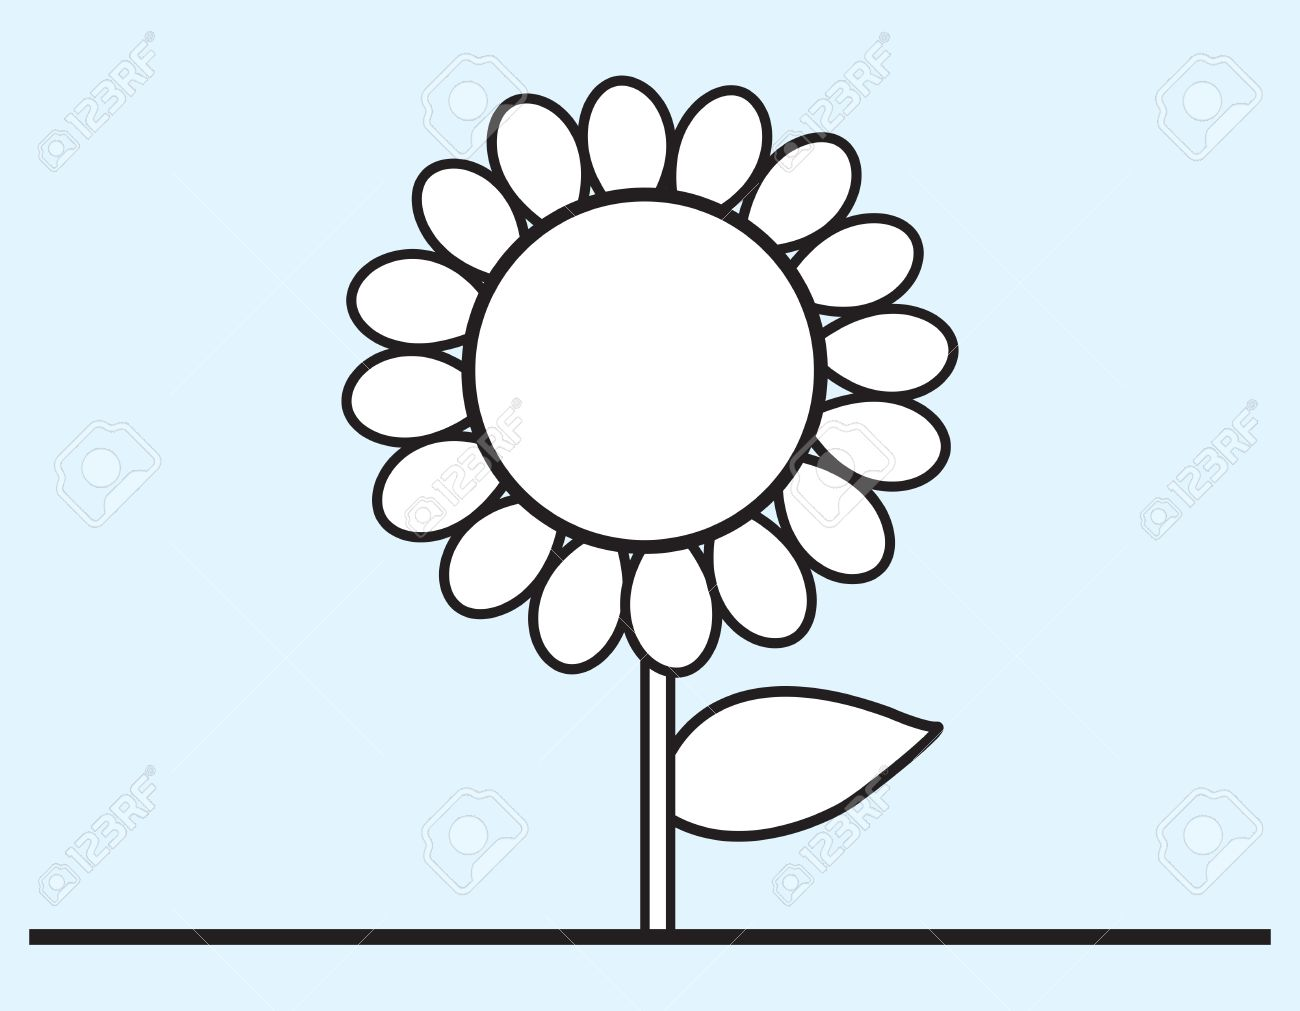 Flower Cartoon Drawing Royalty Free Cliparts Vectors And Stock